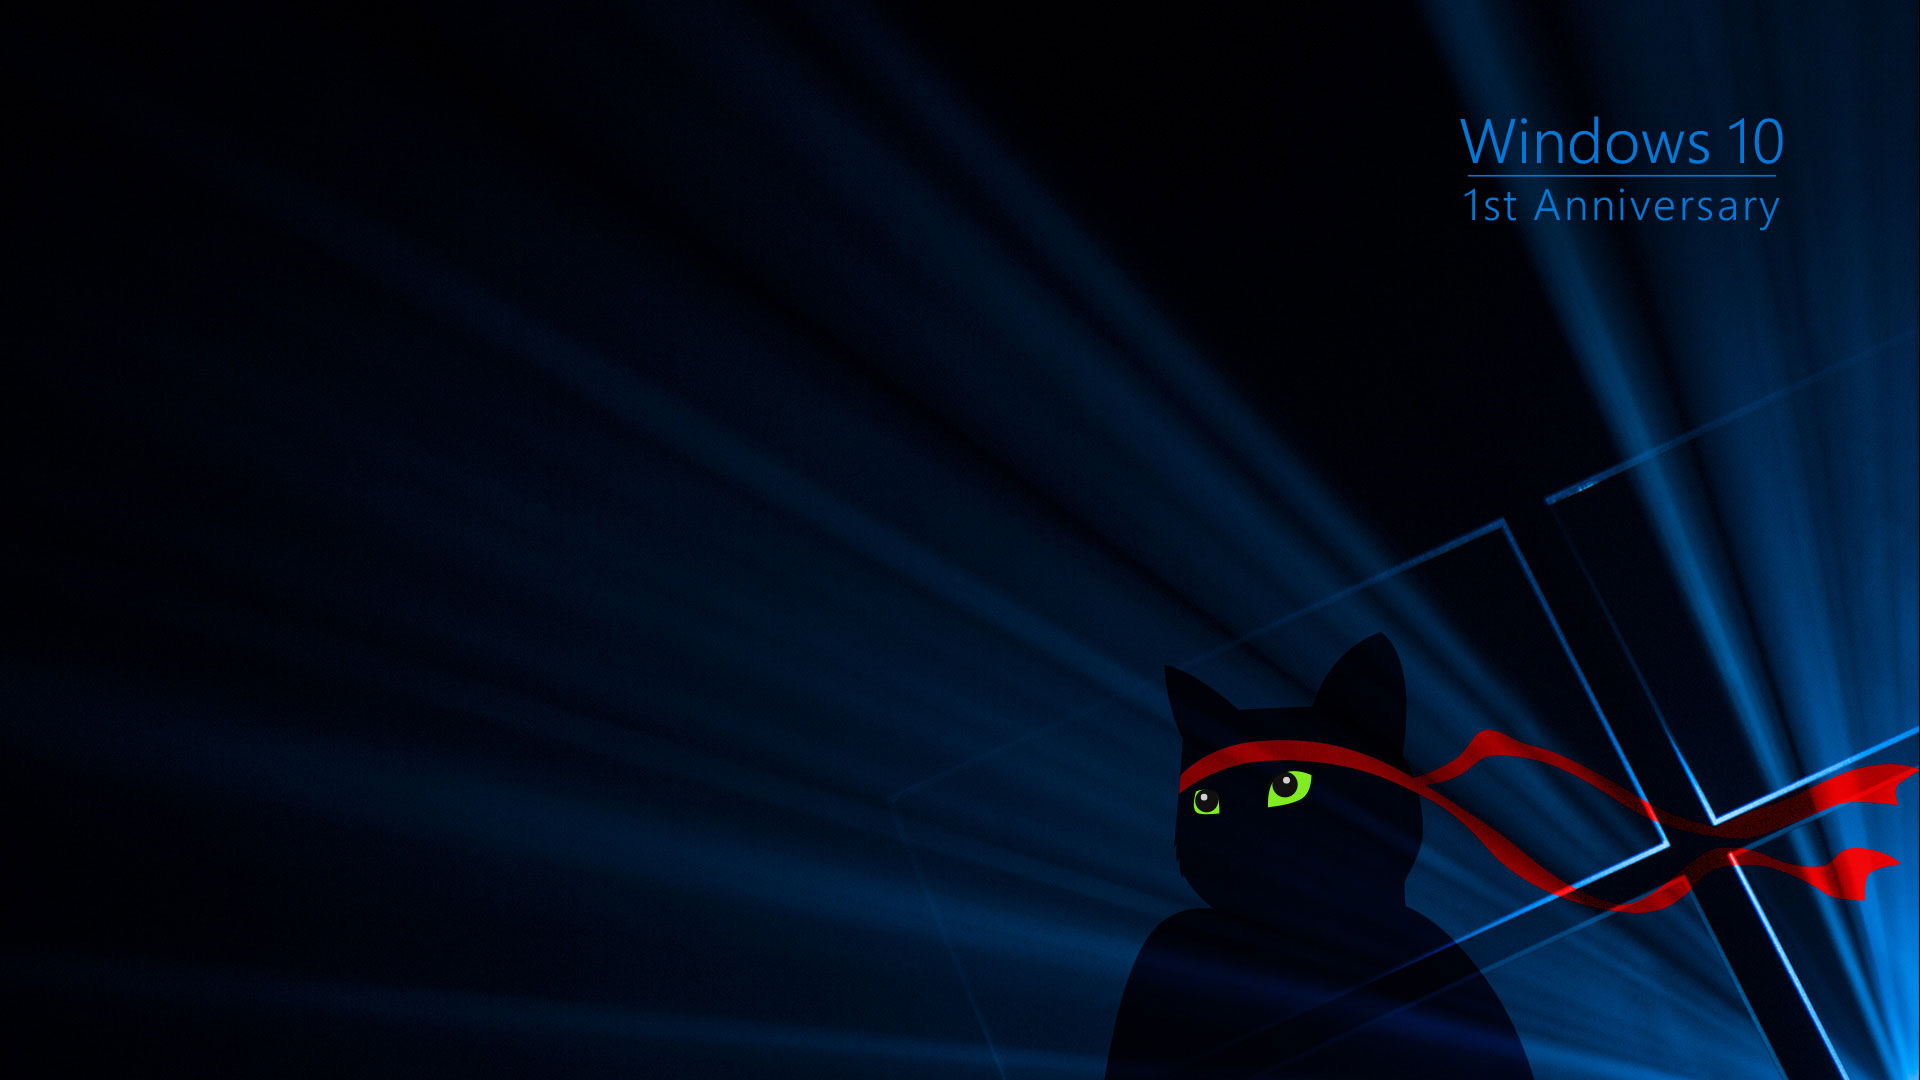 Windows_Insider_Anniversary-Ninjacat-1920x1080